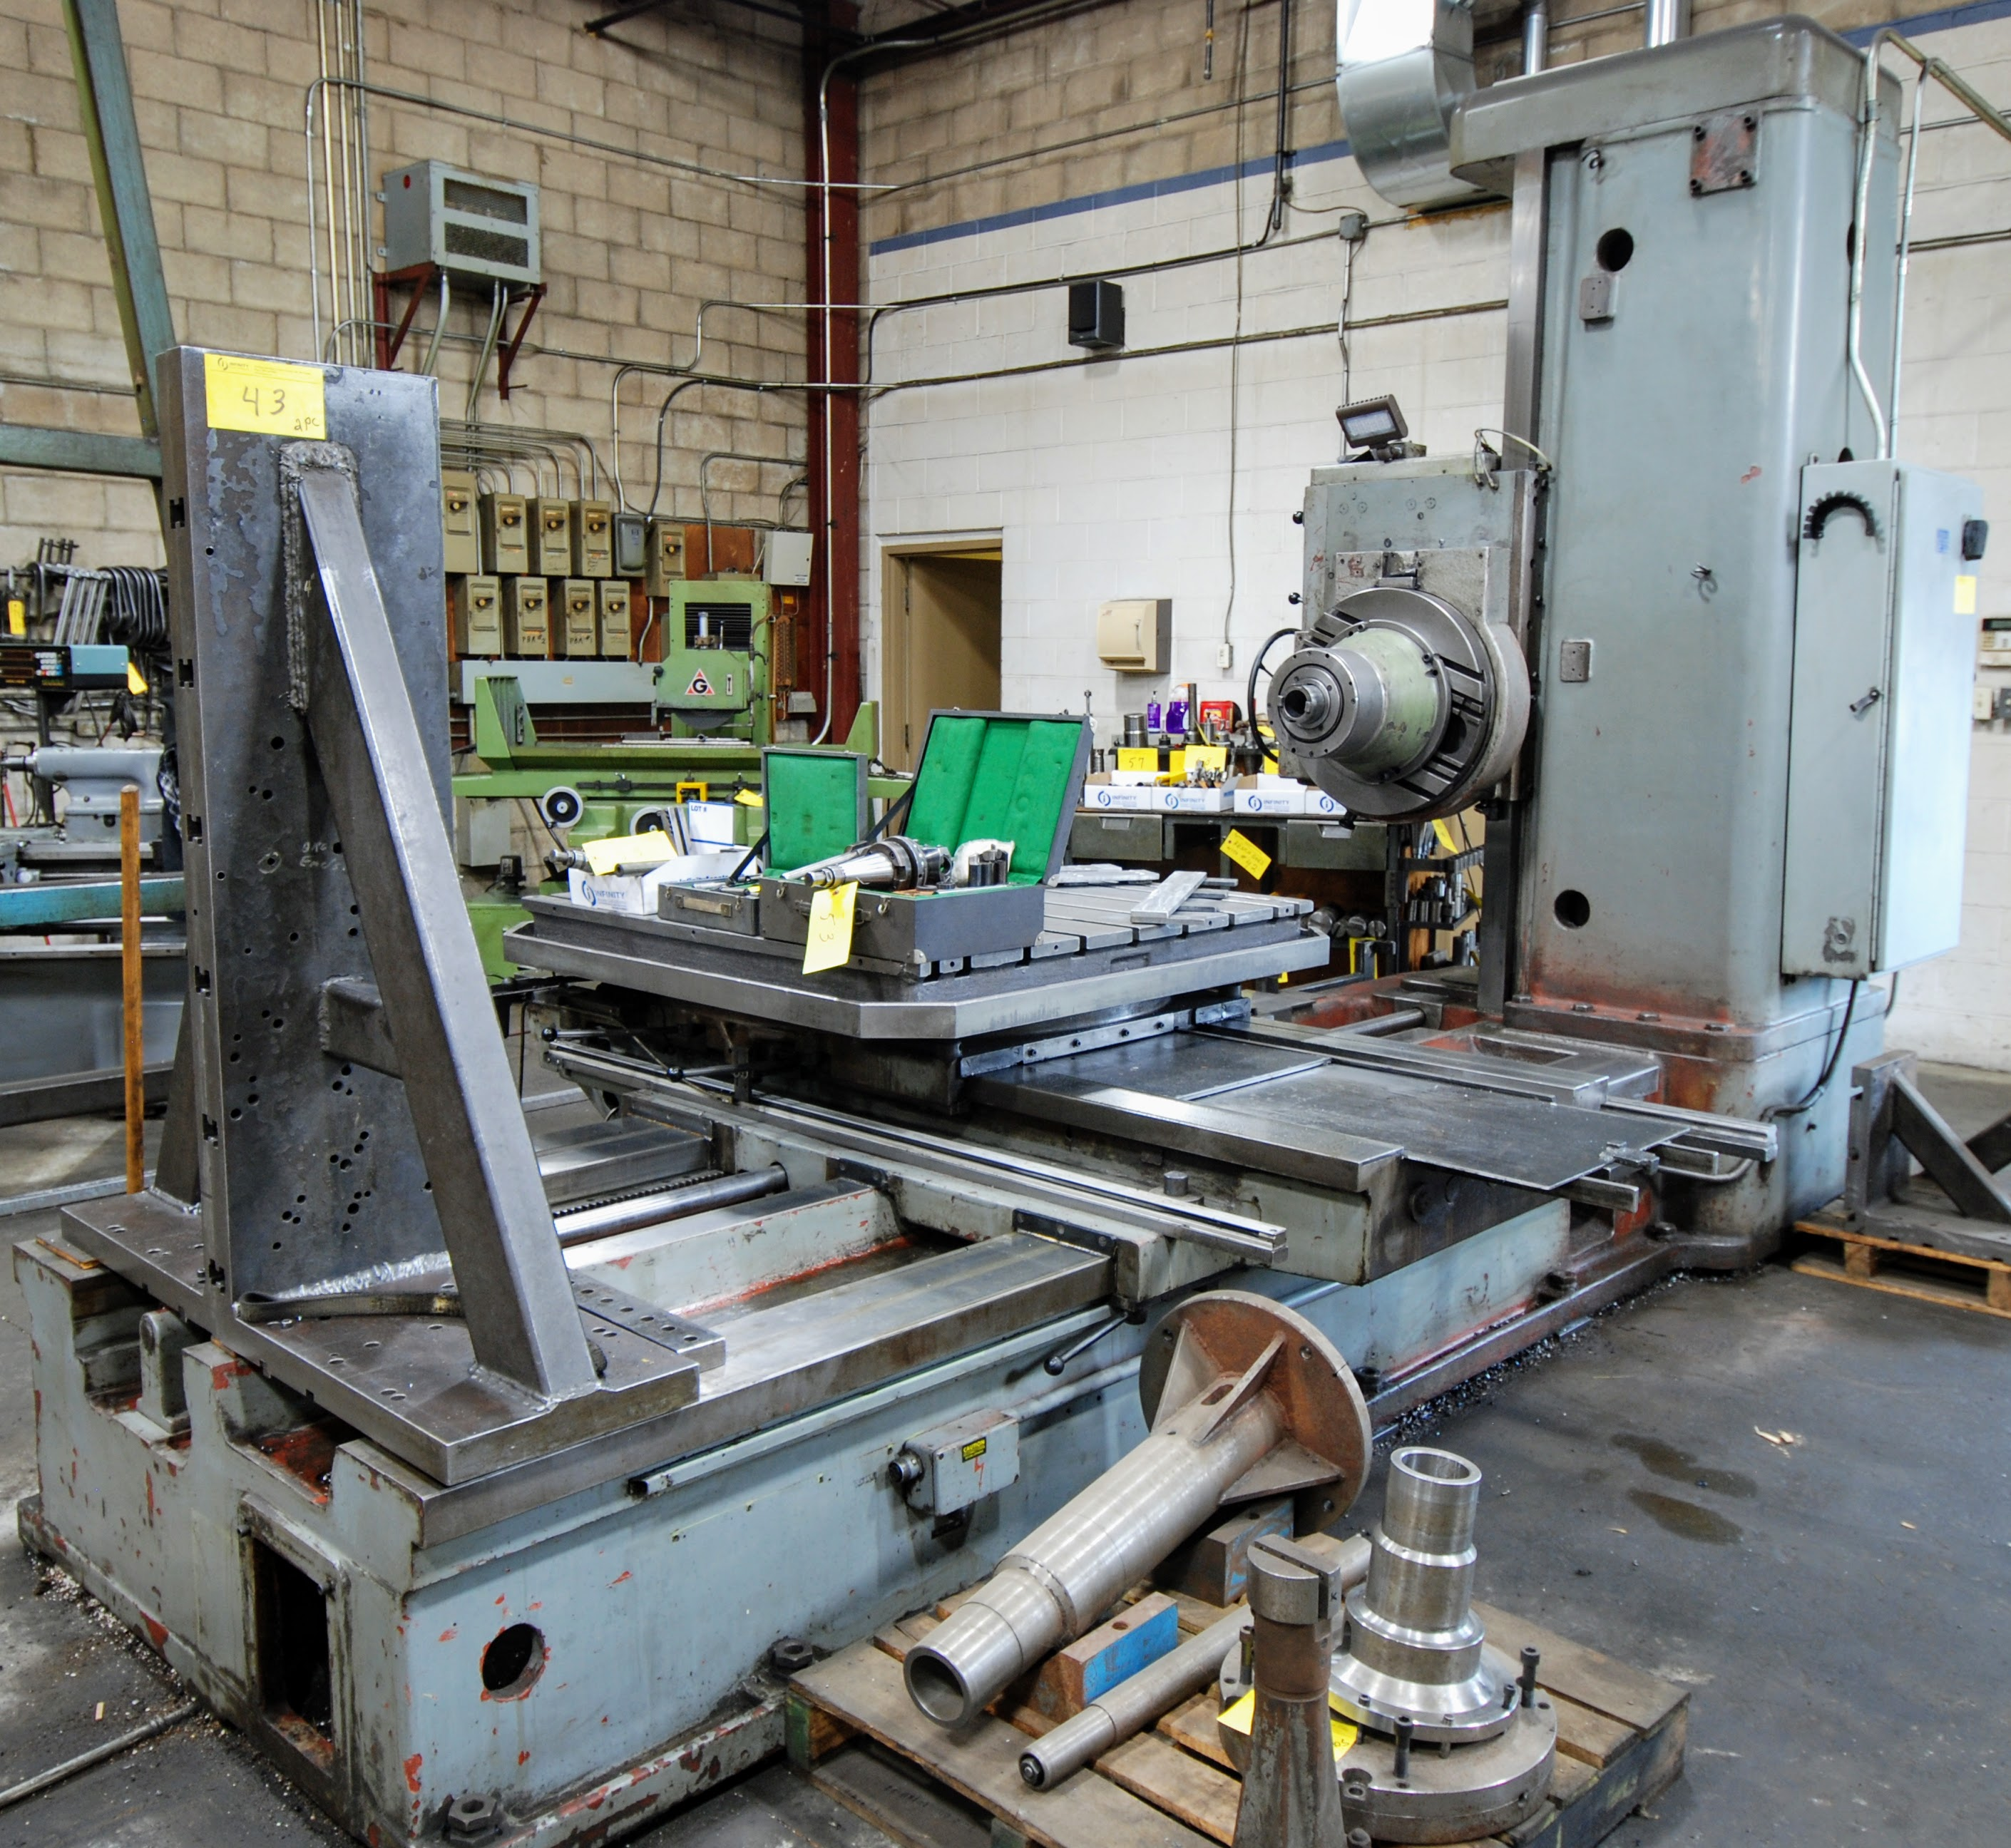 "TOS W100 HORIZONTAL BORING MILL, ACU-RITE 4-AXIS DRO, 4"" SPINDLE, 14 TO 1,120 RPM, 49"" X 49"" POWERED"